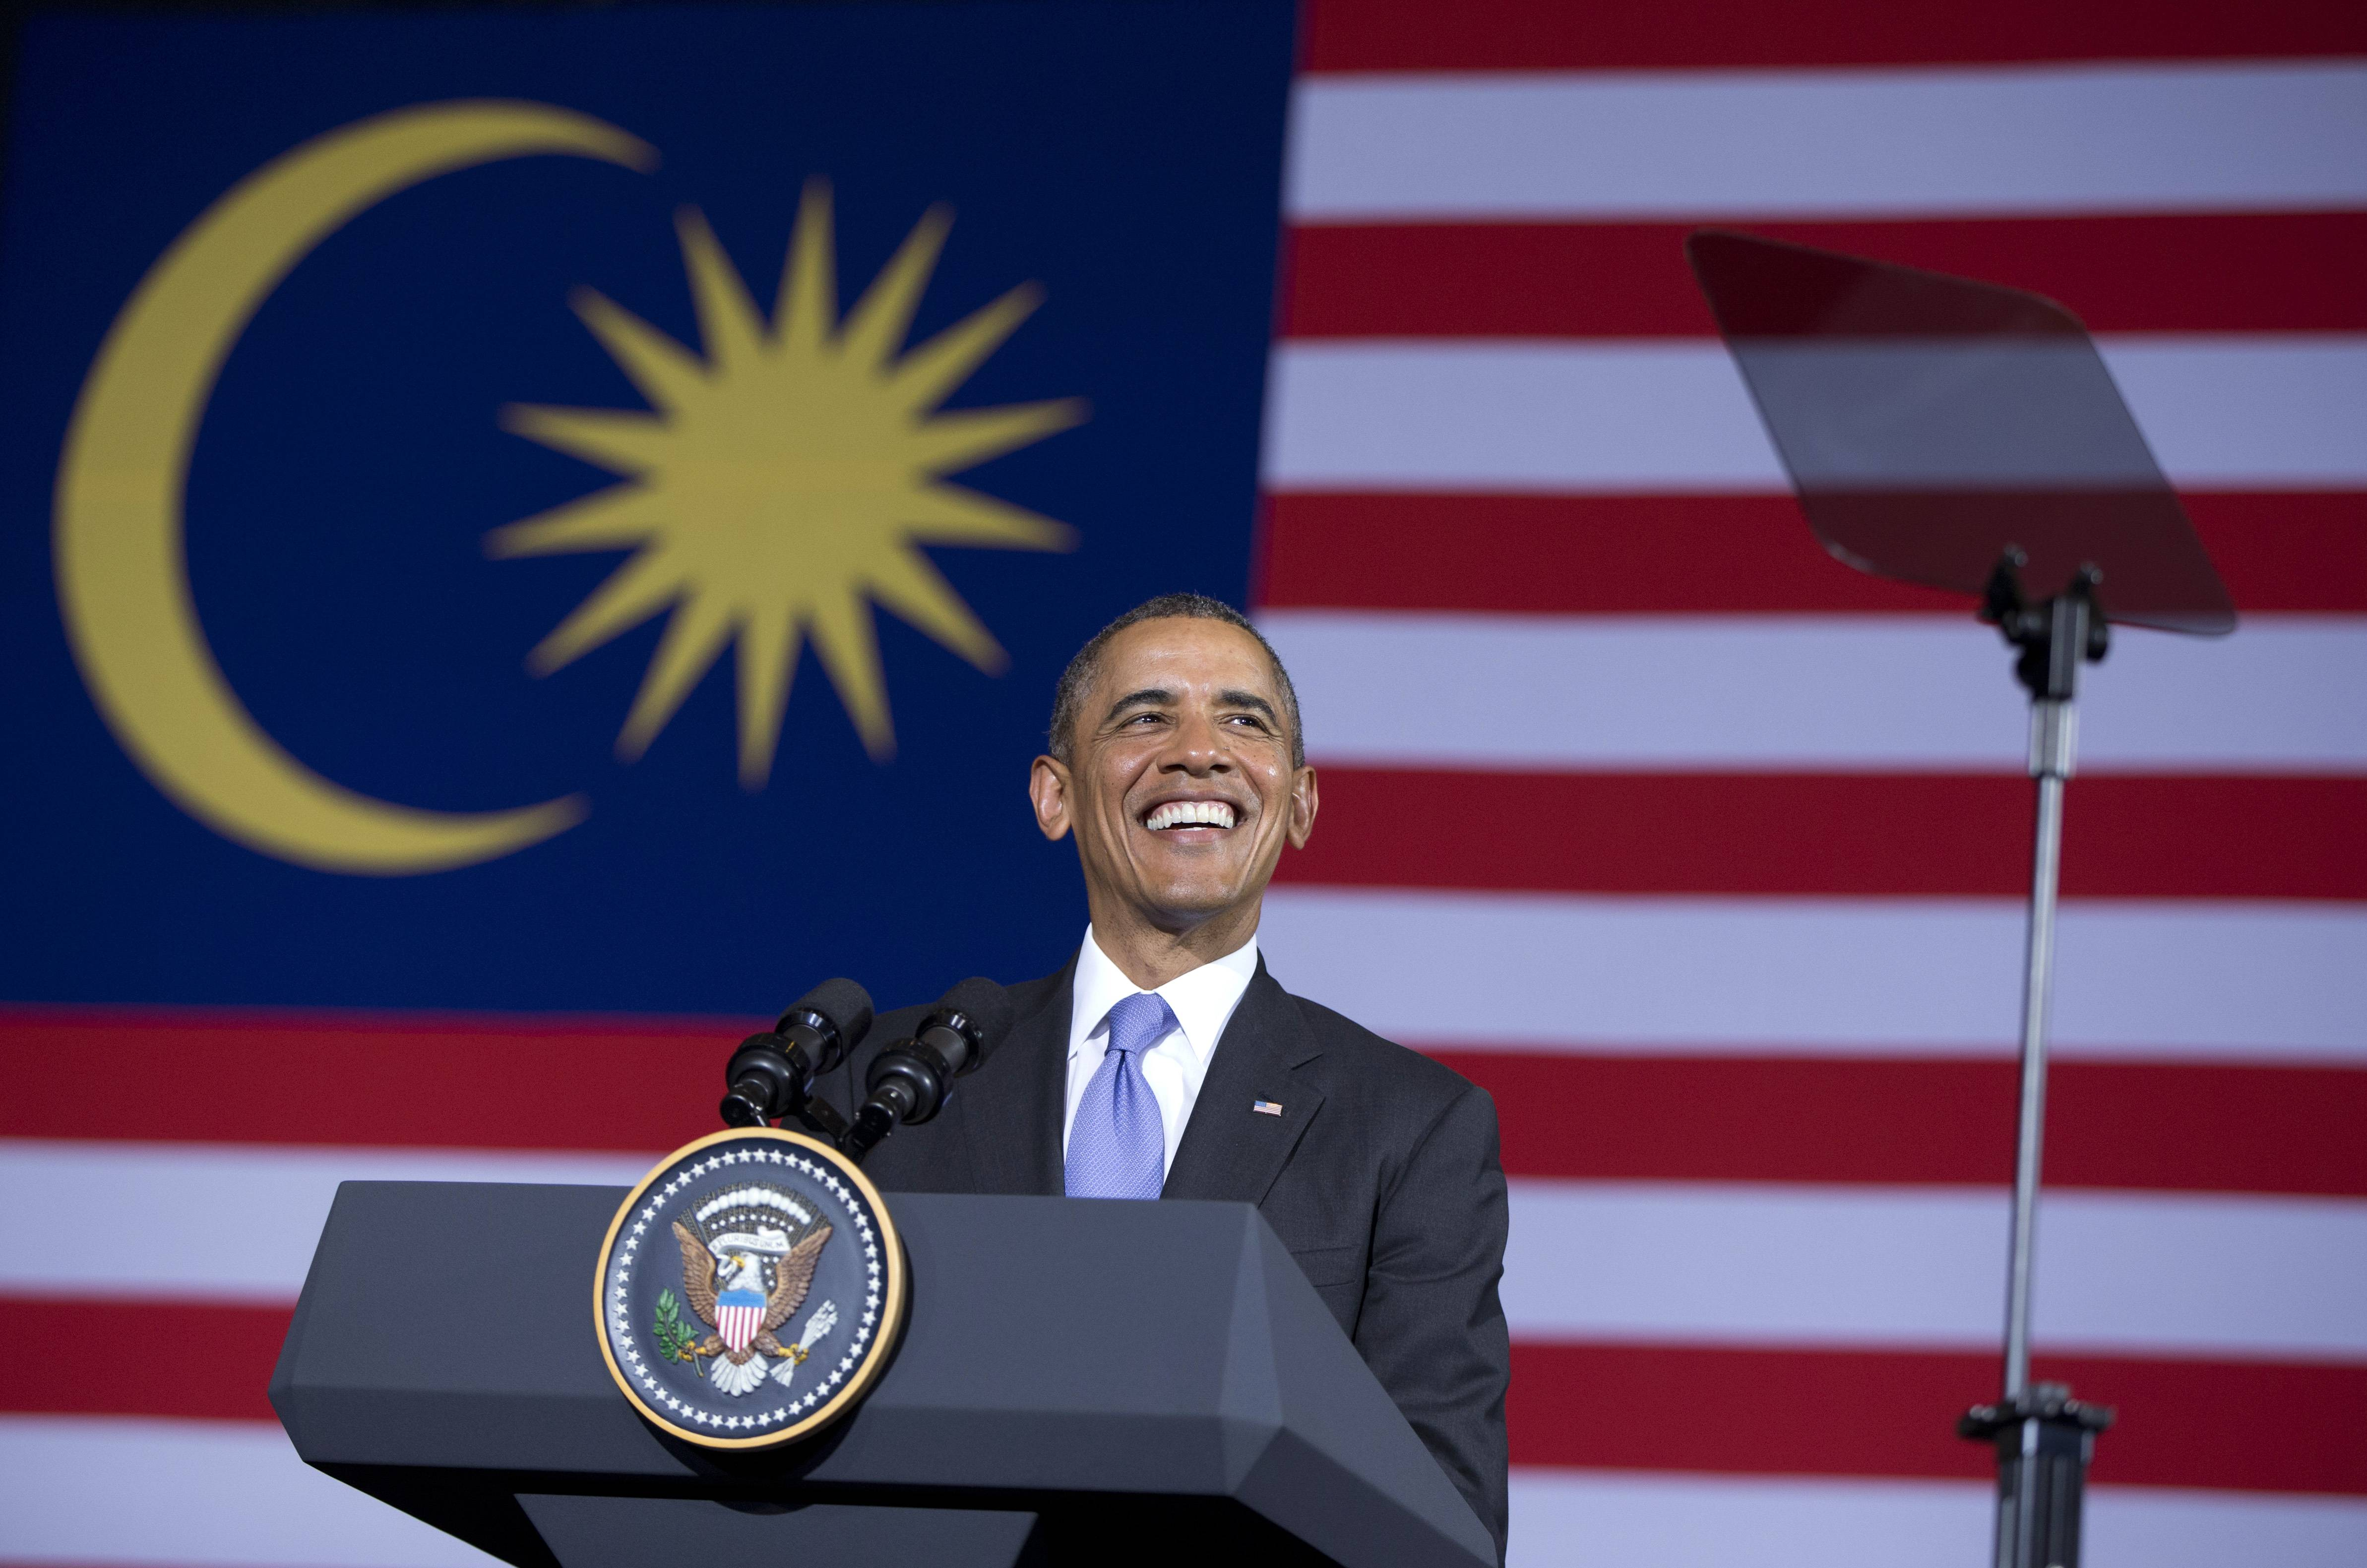 President Barack Obama speaks during a town hall meeting at Malaya University in Kuala Lumpur, Malaysia, Sunday. The last American president to visit Malaysia was Lyndon B. Johnson in 1966.